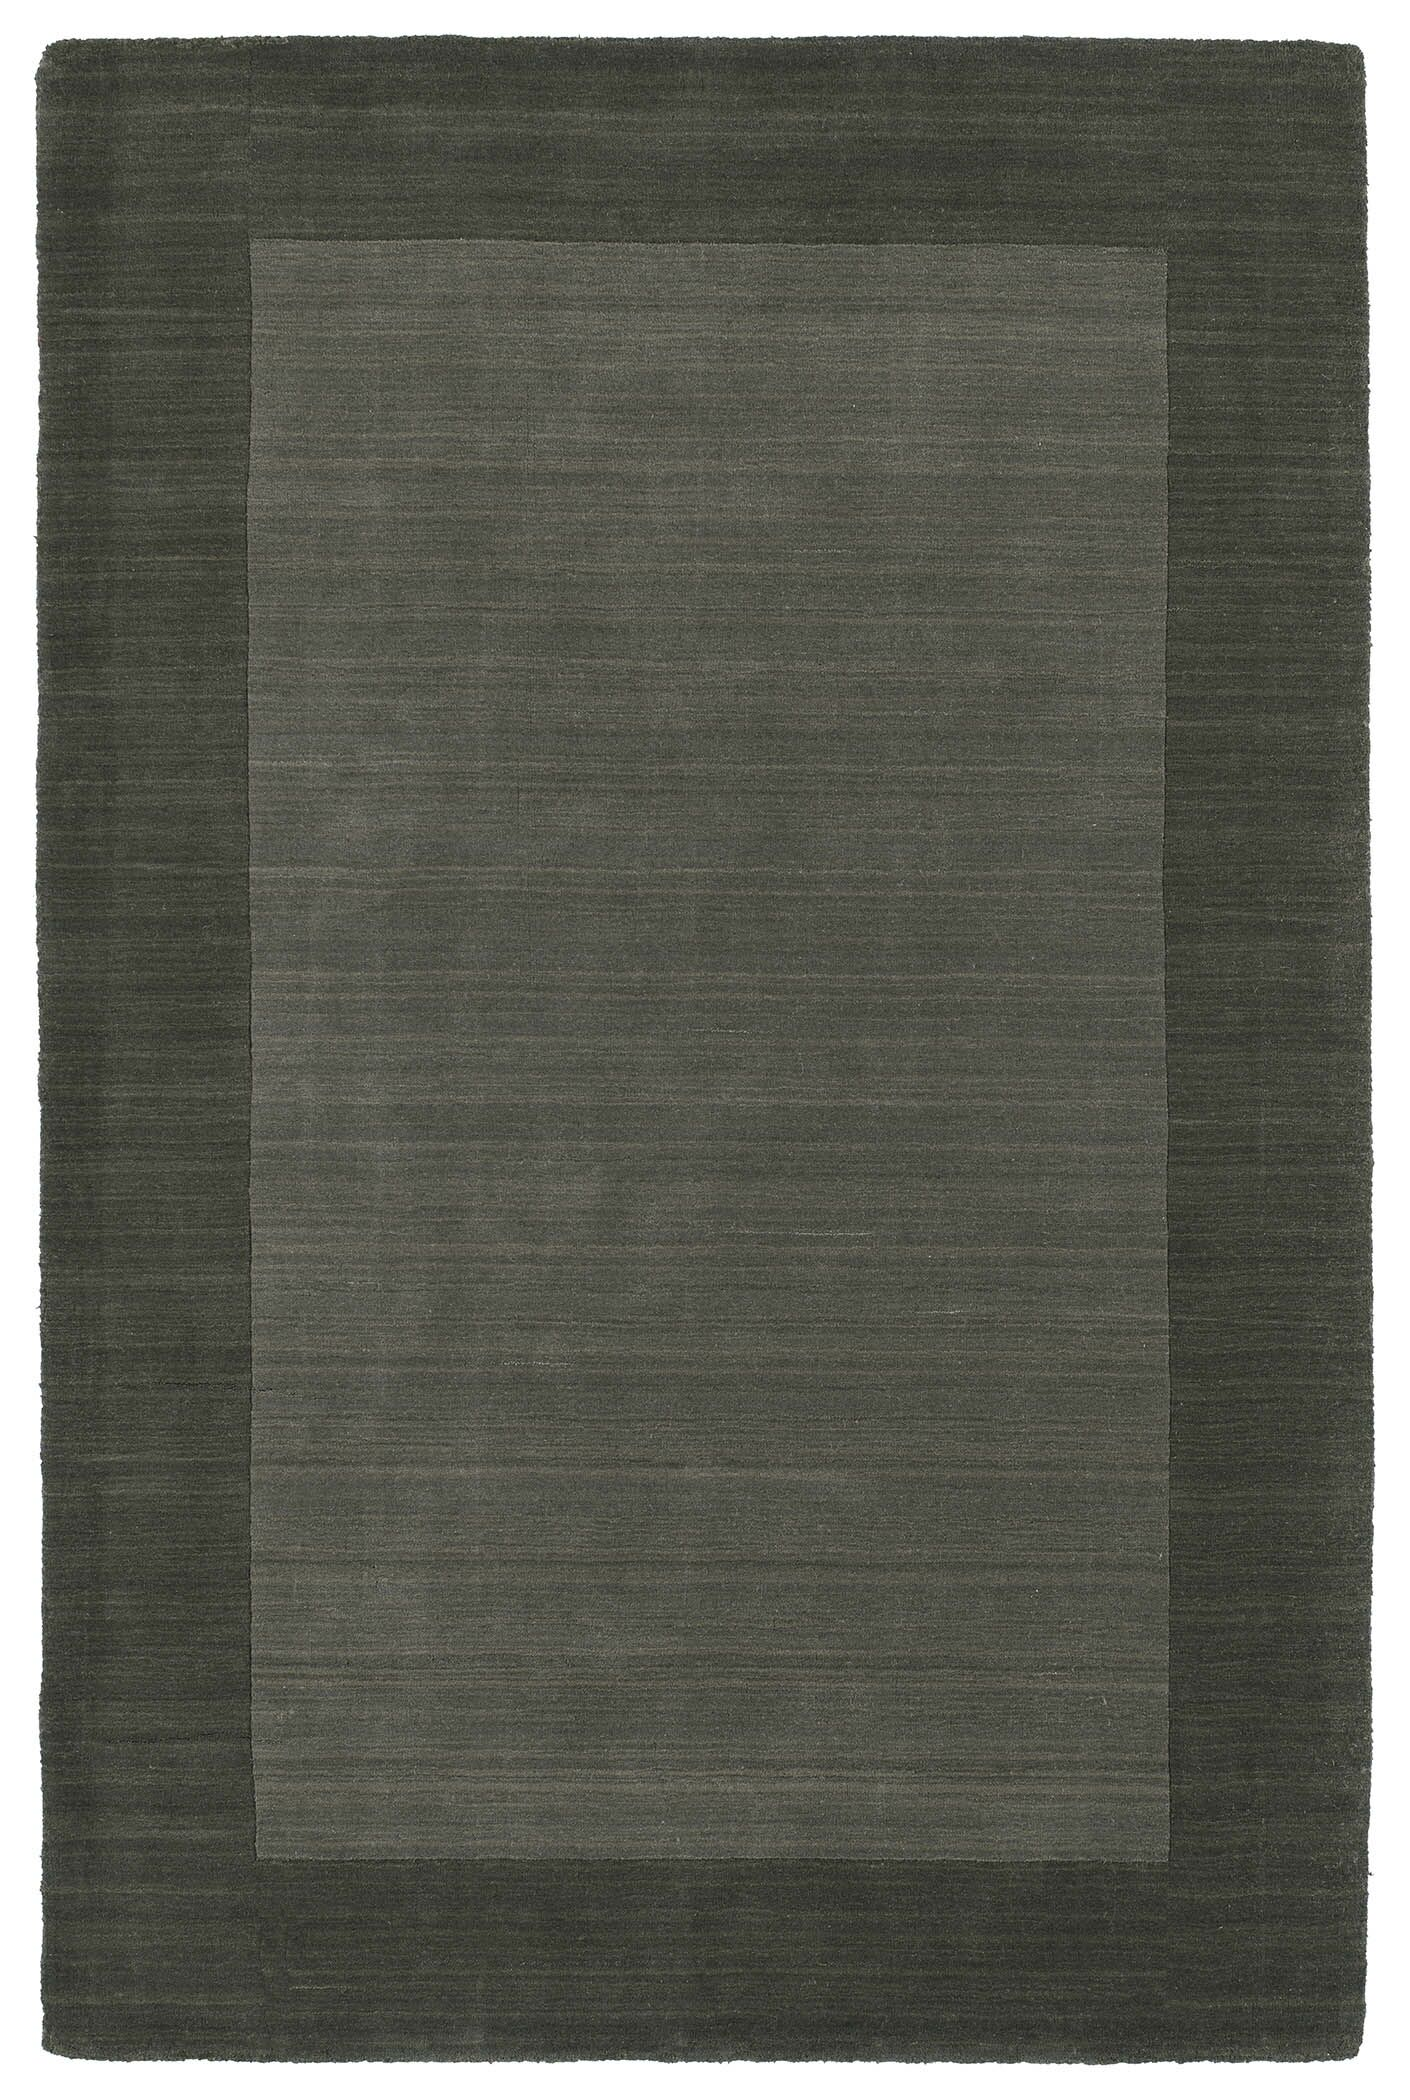 Attles Solid Charcoal Area Rug Rug Size: Rectangle 3'6